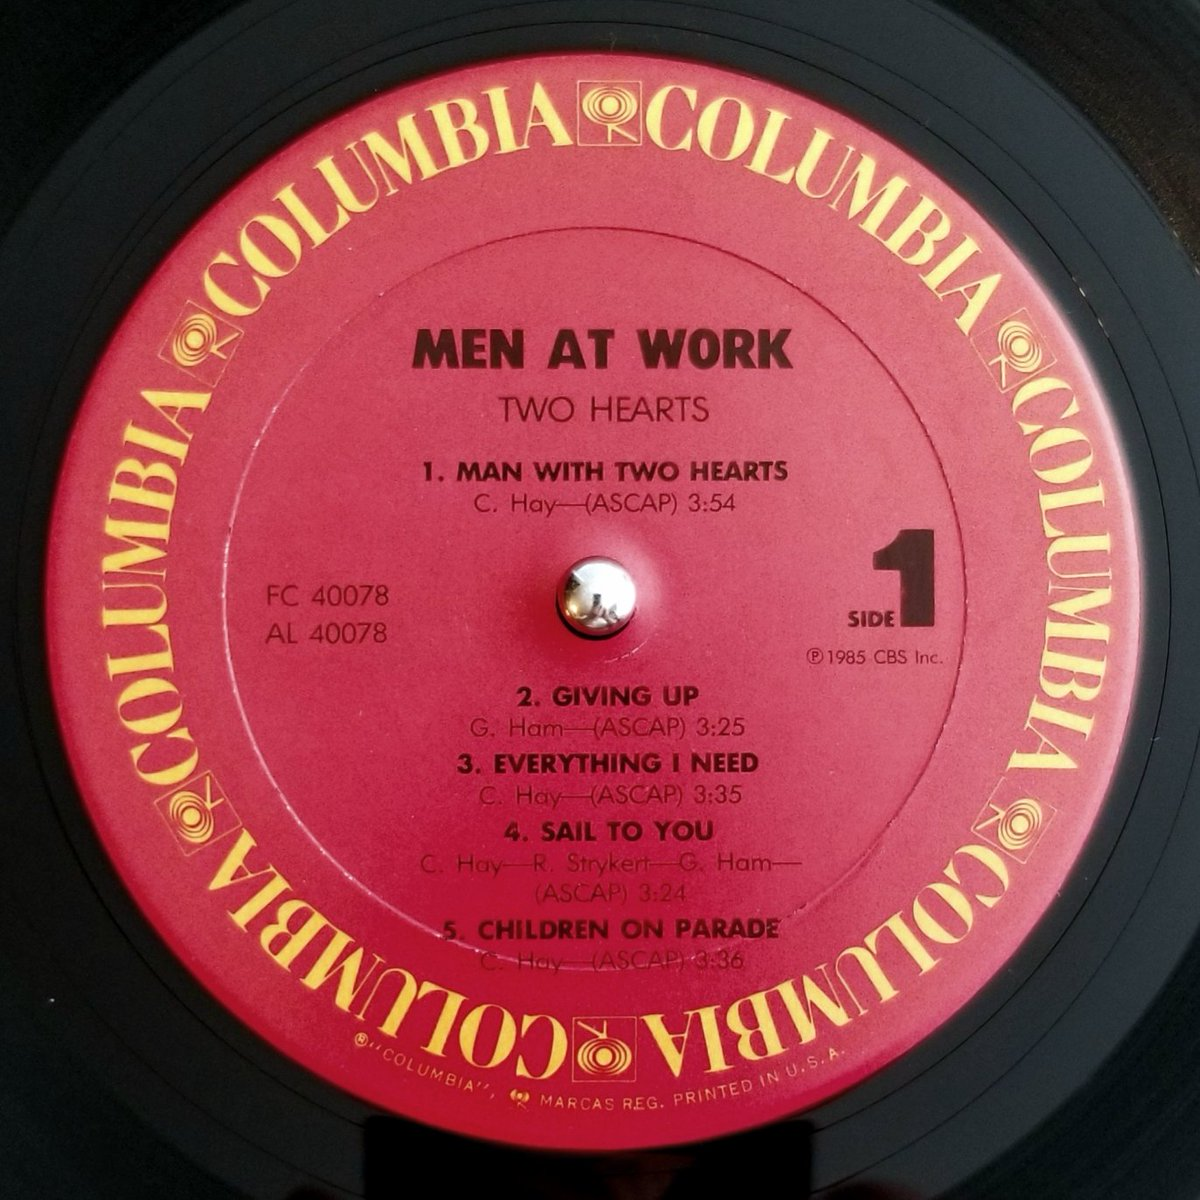 #MenAtWork #TwoHearts #Columbia #RecordLabel #SonicRecreation #FullDynamicRange #WhatsSpinning #NowPlaying #VinylRecords #VinylRulespic.twitter.com/DQ7SvidPcI